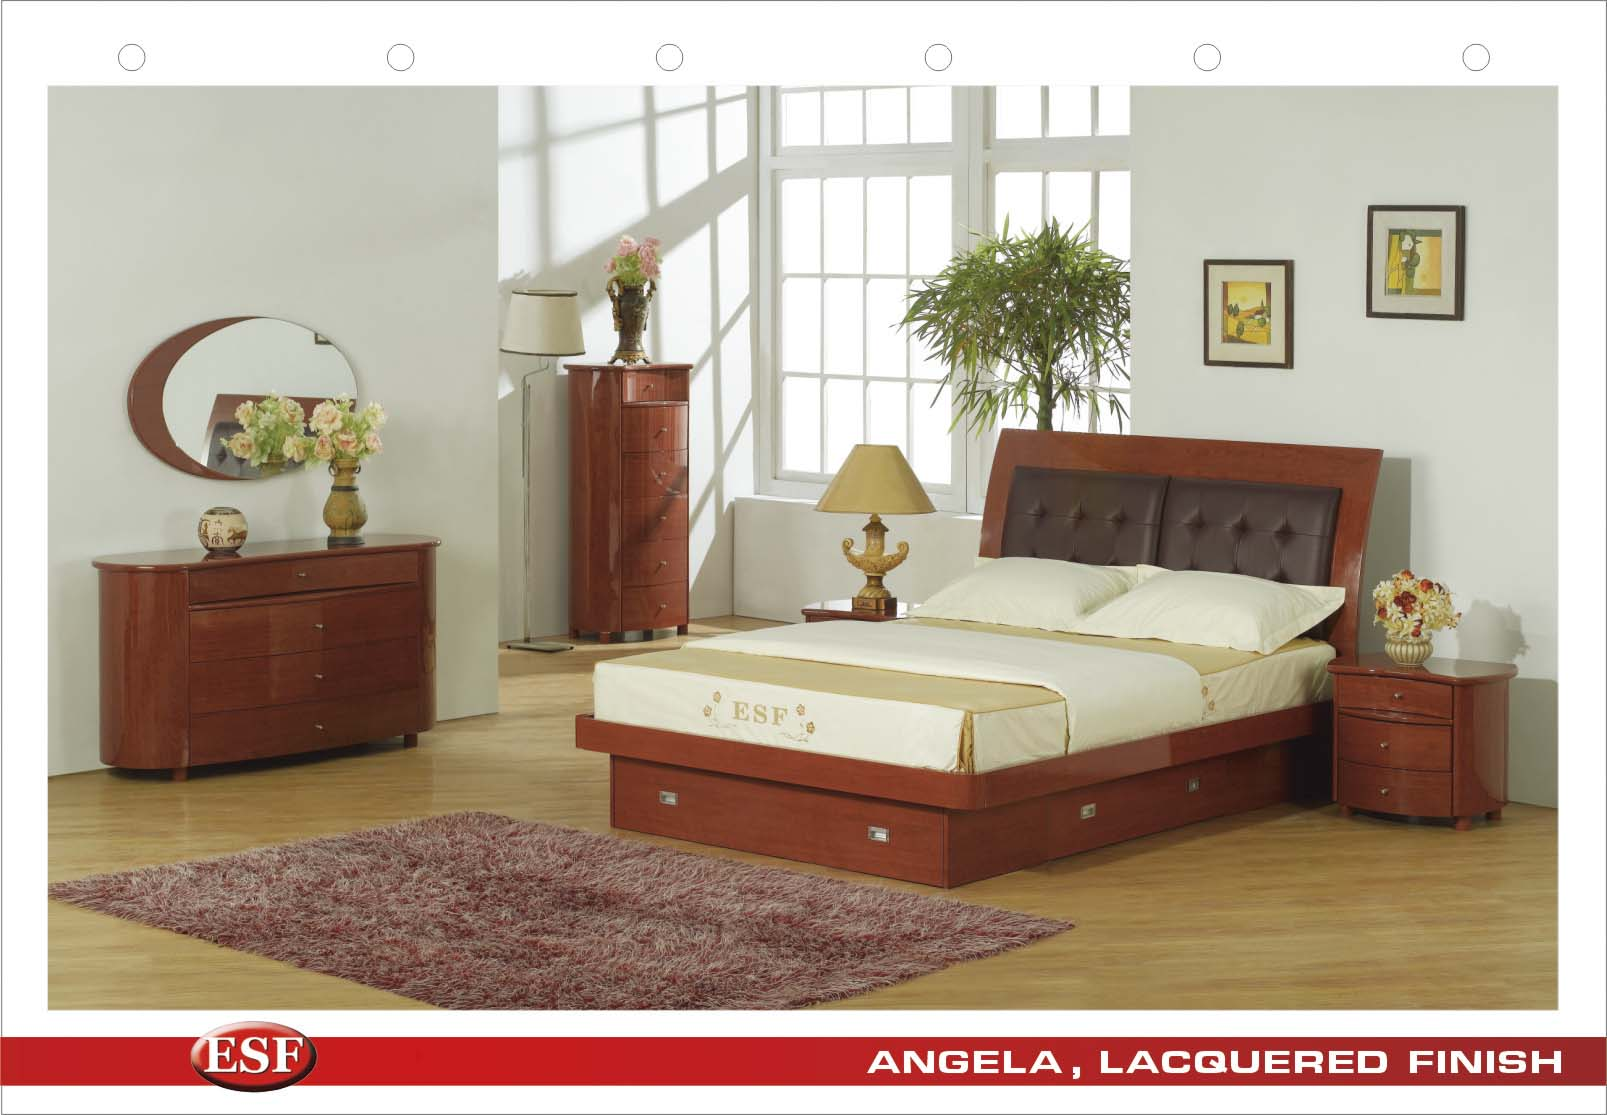 Best modern furniture stores in massachusetts - Bedroom Furniture